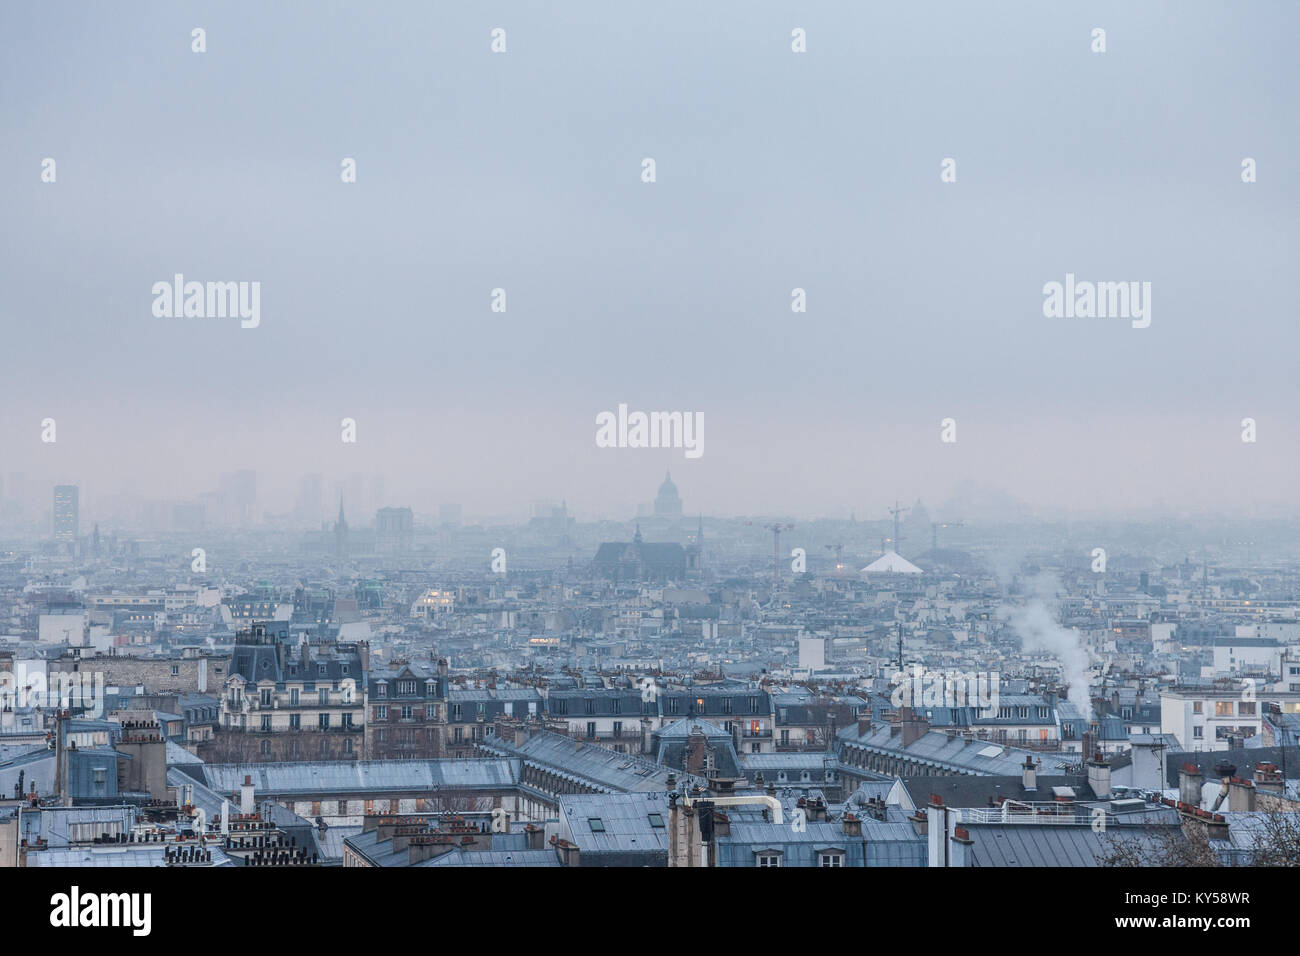 Aerial view of Paris, capital city of France, during a cold winter afternoon, with clouds and fog generated by pollution. - Stock Image